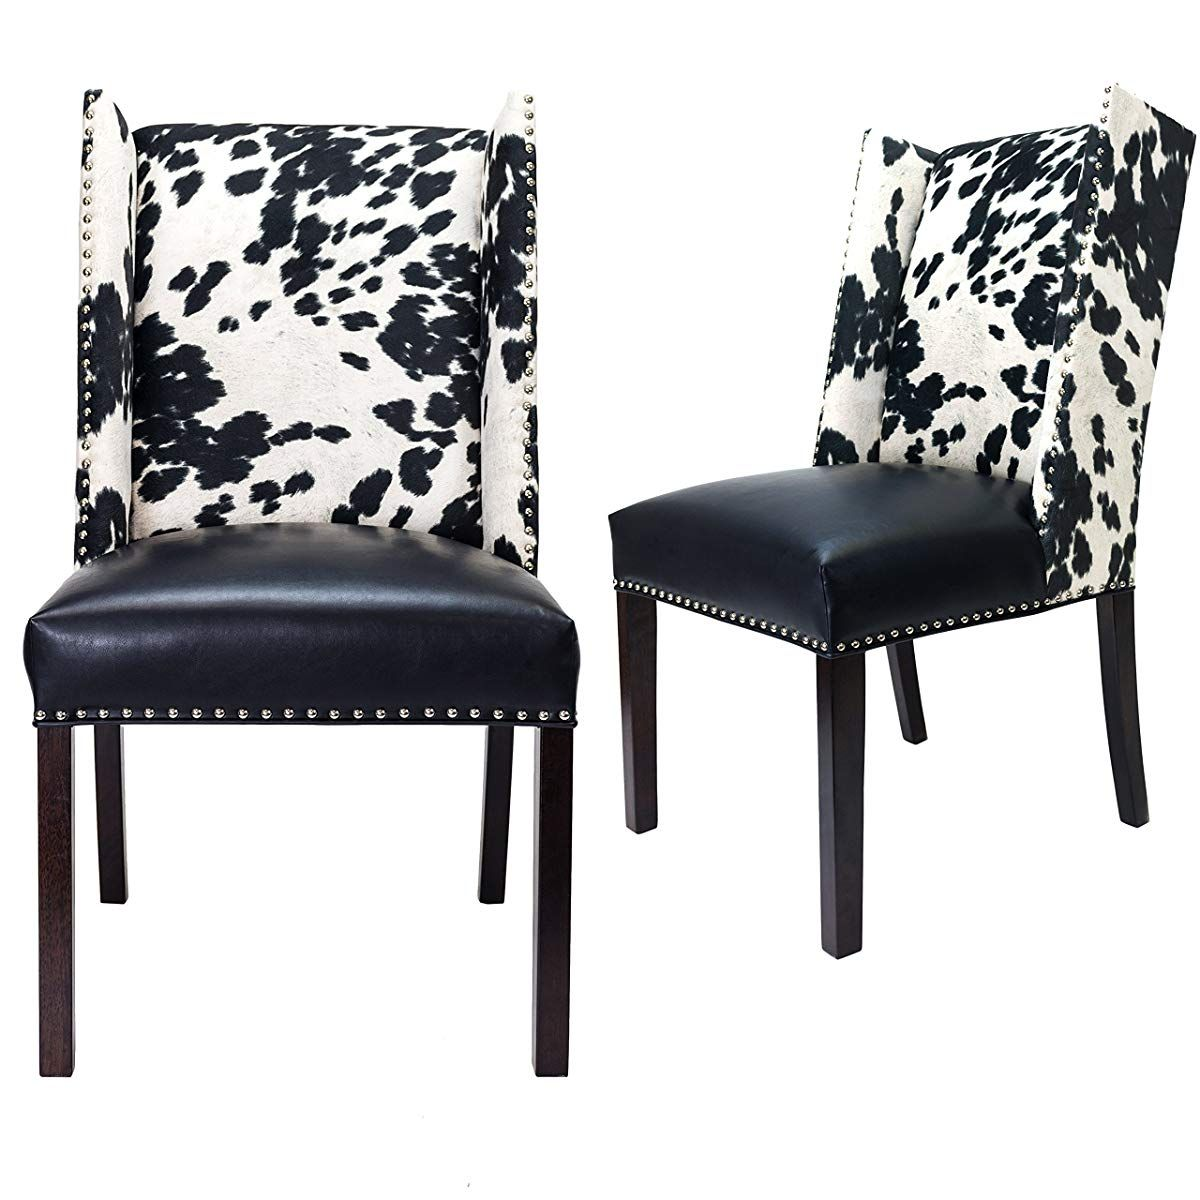 Faux Cowhide Leather And Fabric Upholstered Dining Side Chair Dining Chair Upholstery Dining Chairs Side Chairs Dining